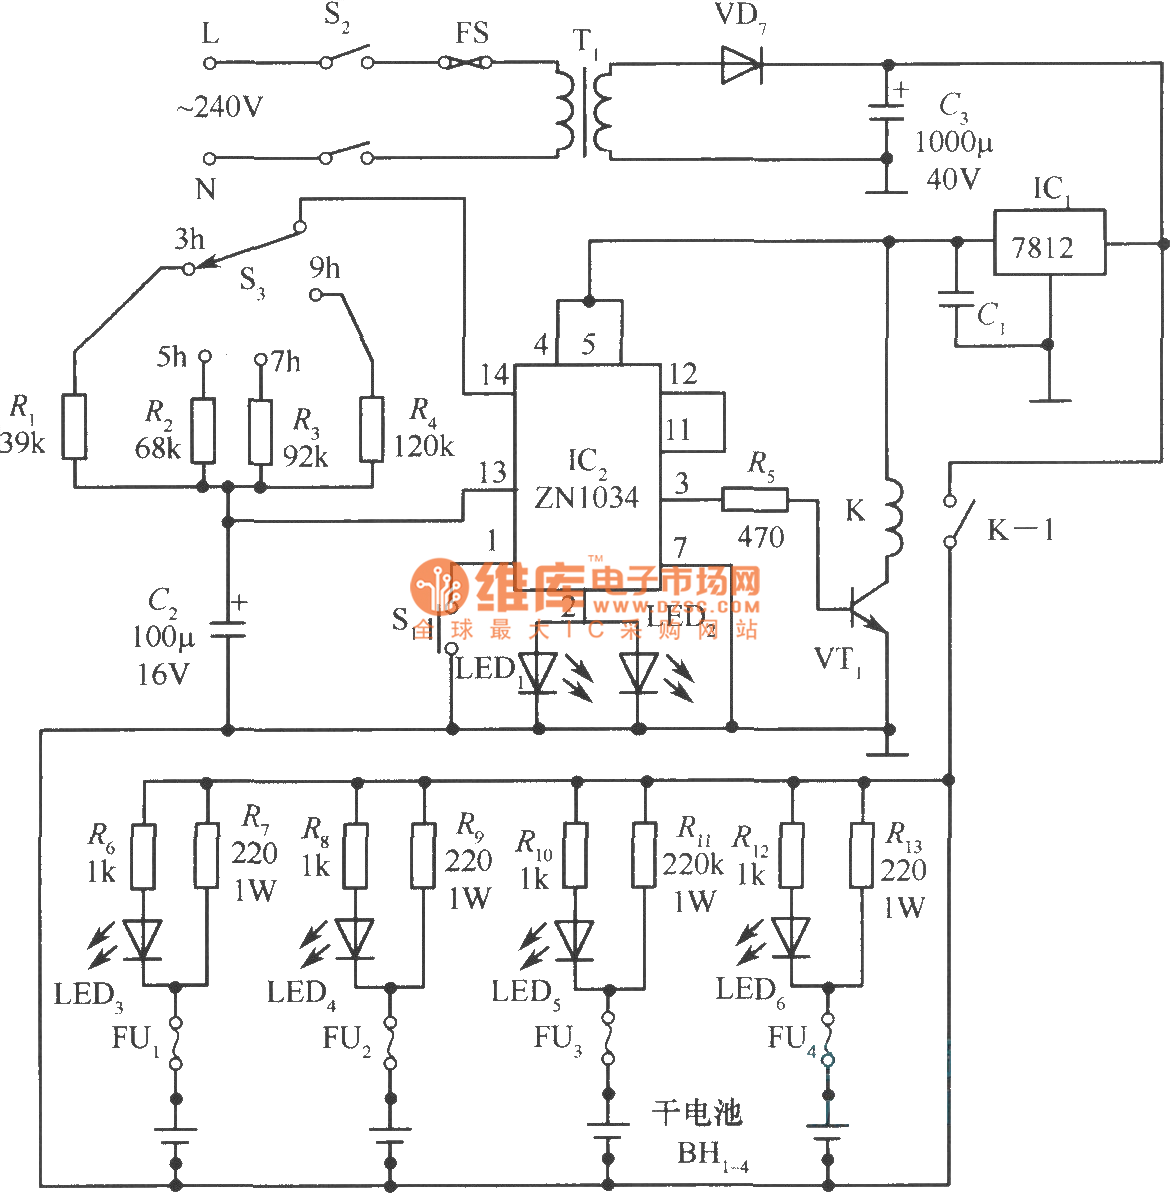 schumacher se 4020 battery charger schematic schumacher get free image about wiring diagram